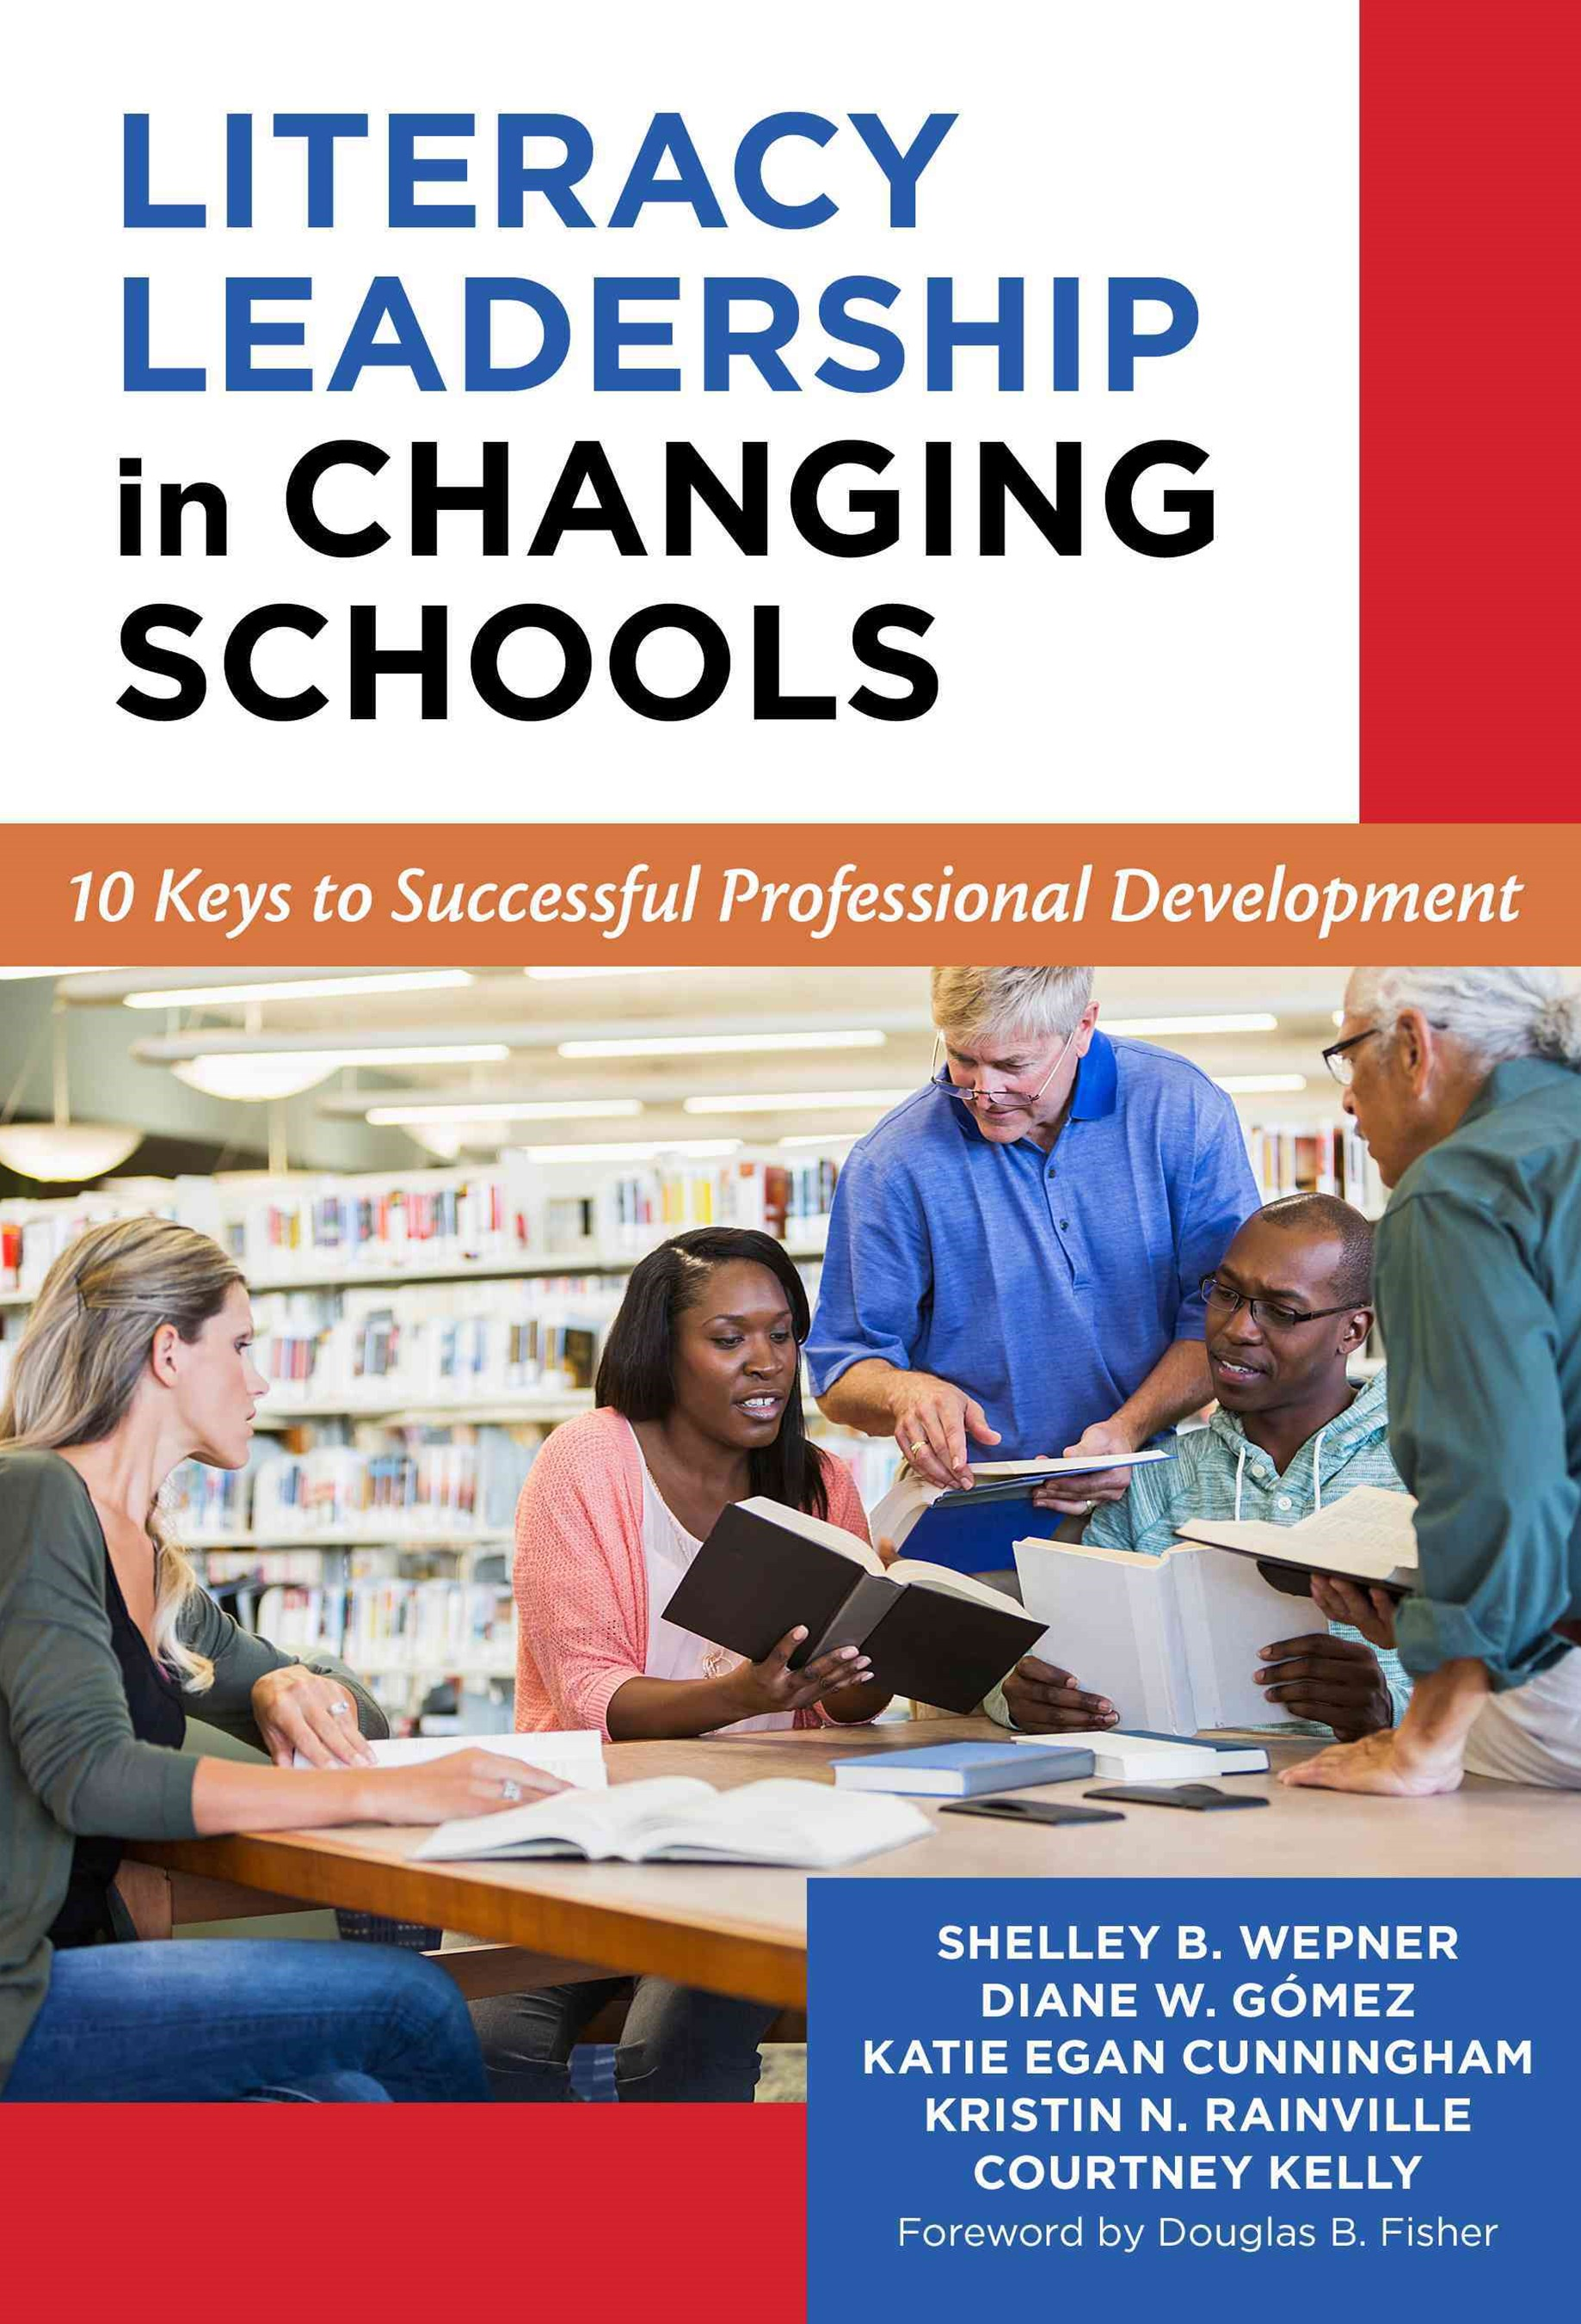 Literacy Leadership in Changing Schools